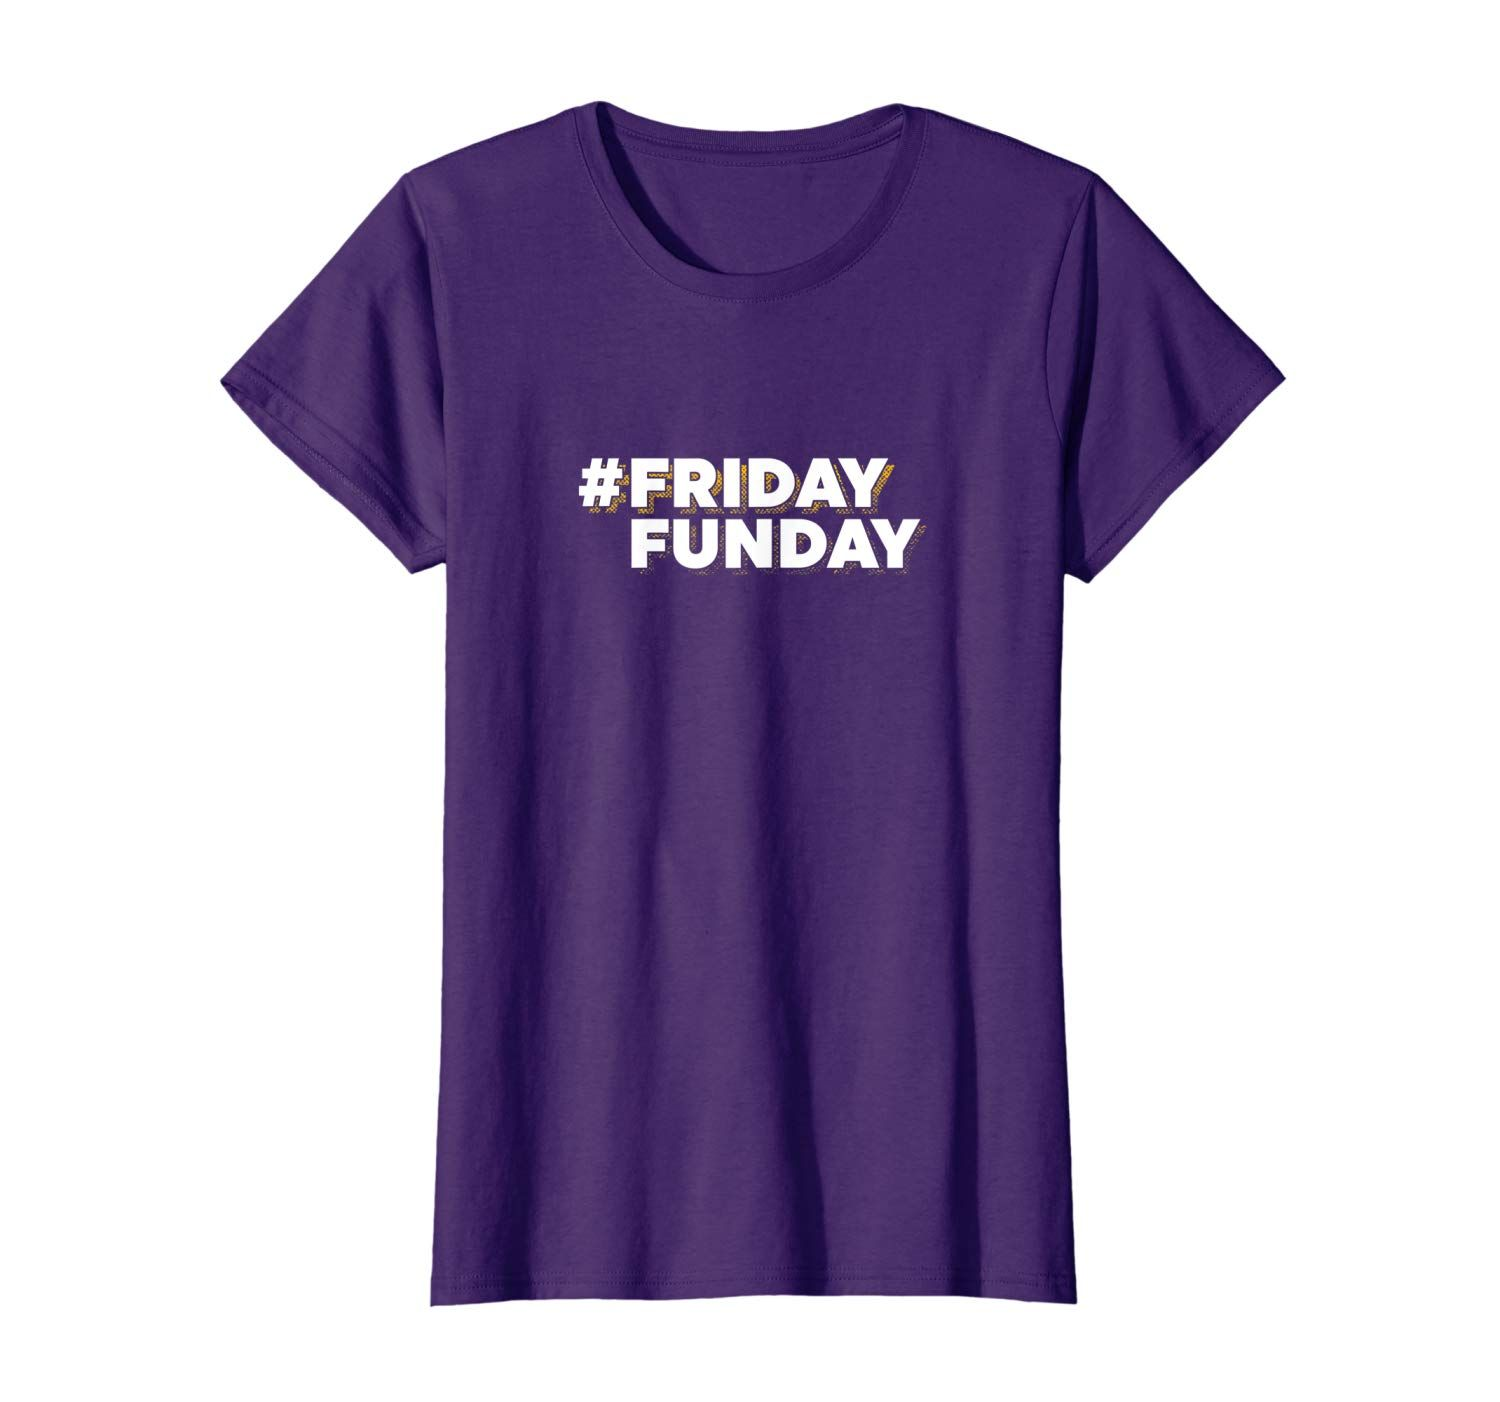 Hashtag Friday Funday T-Shirt For Men and Women